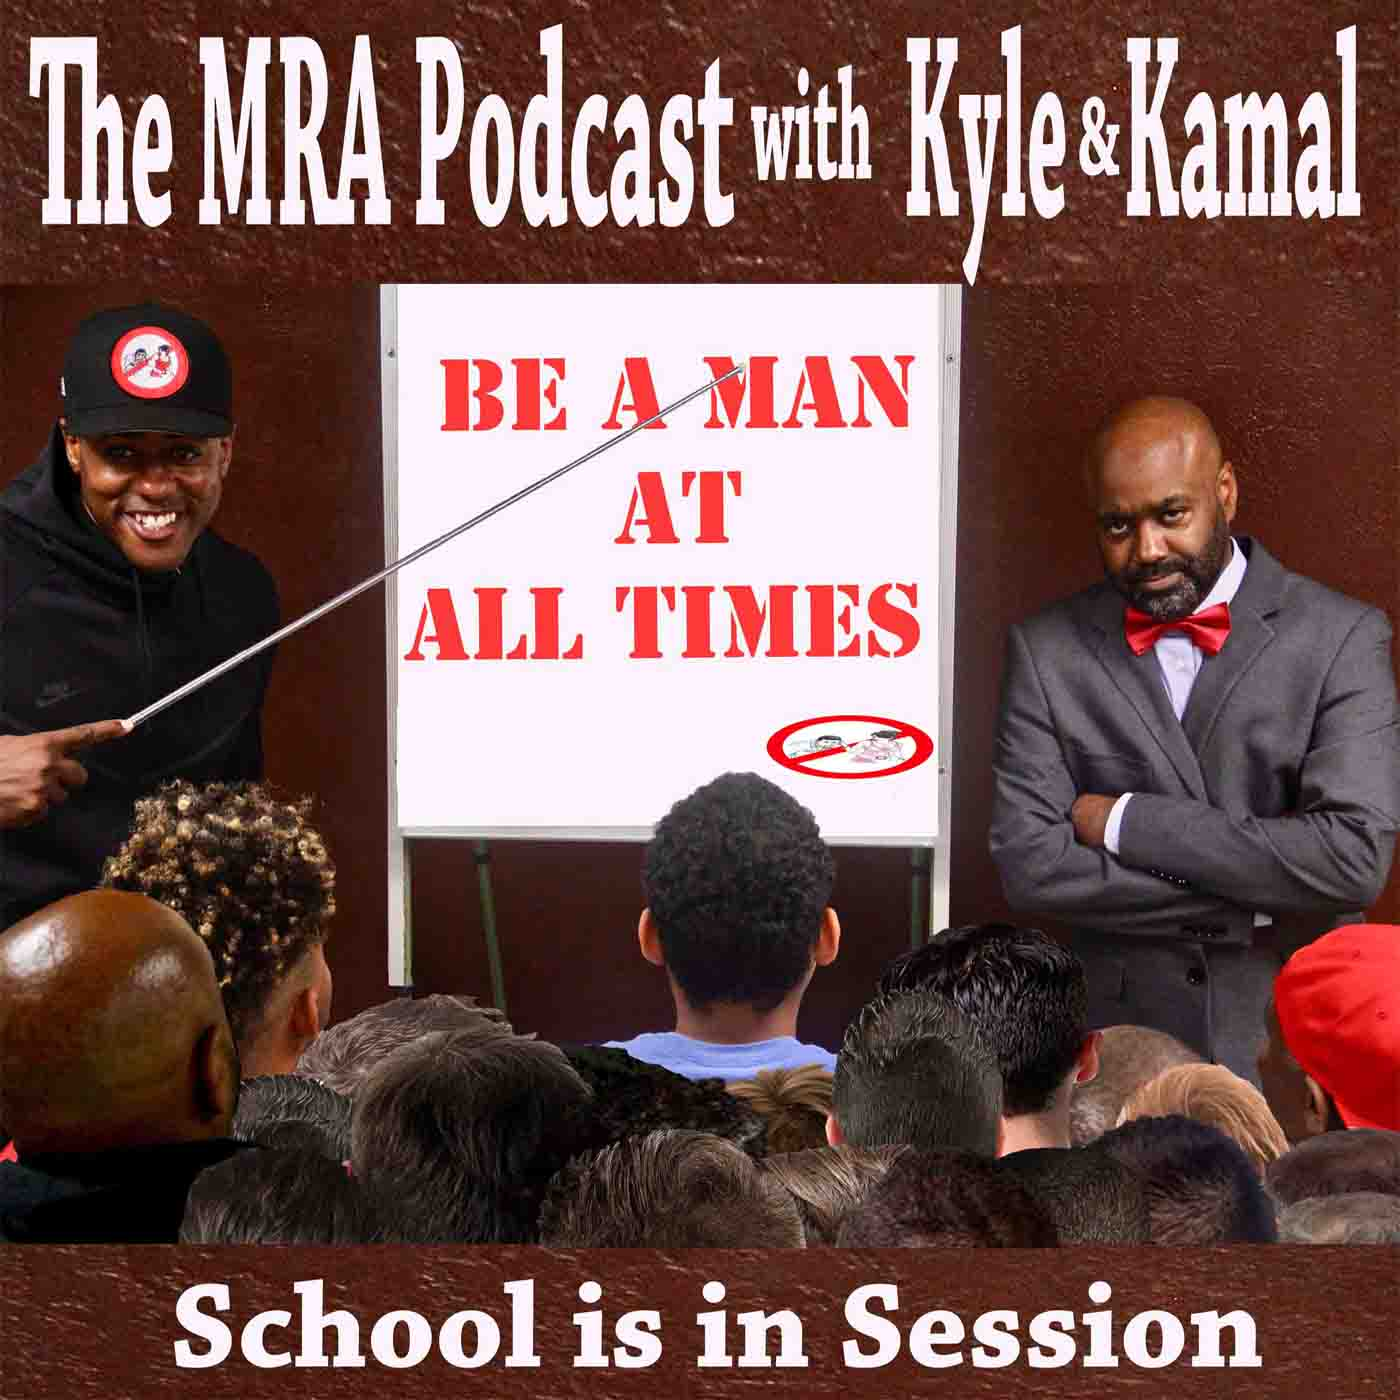 The MRA Podcast with Kyle & Kamal